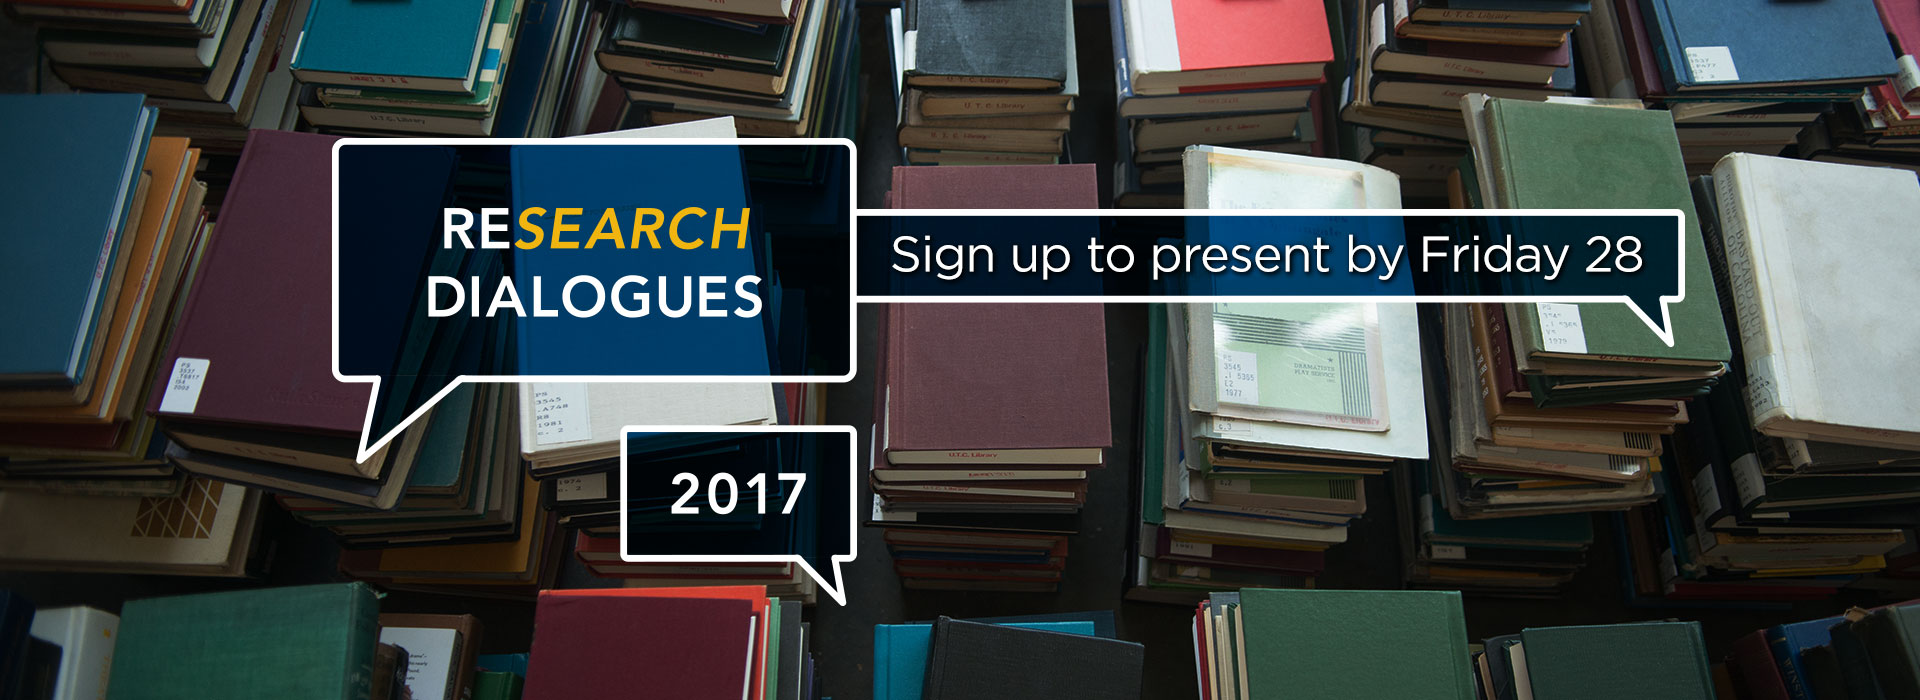 reSEARCH Dialogues 2017 sign up by February 28